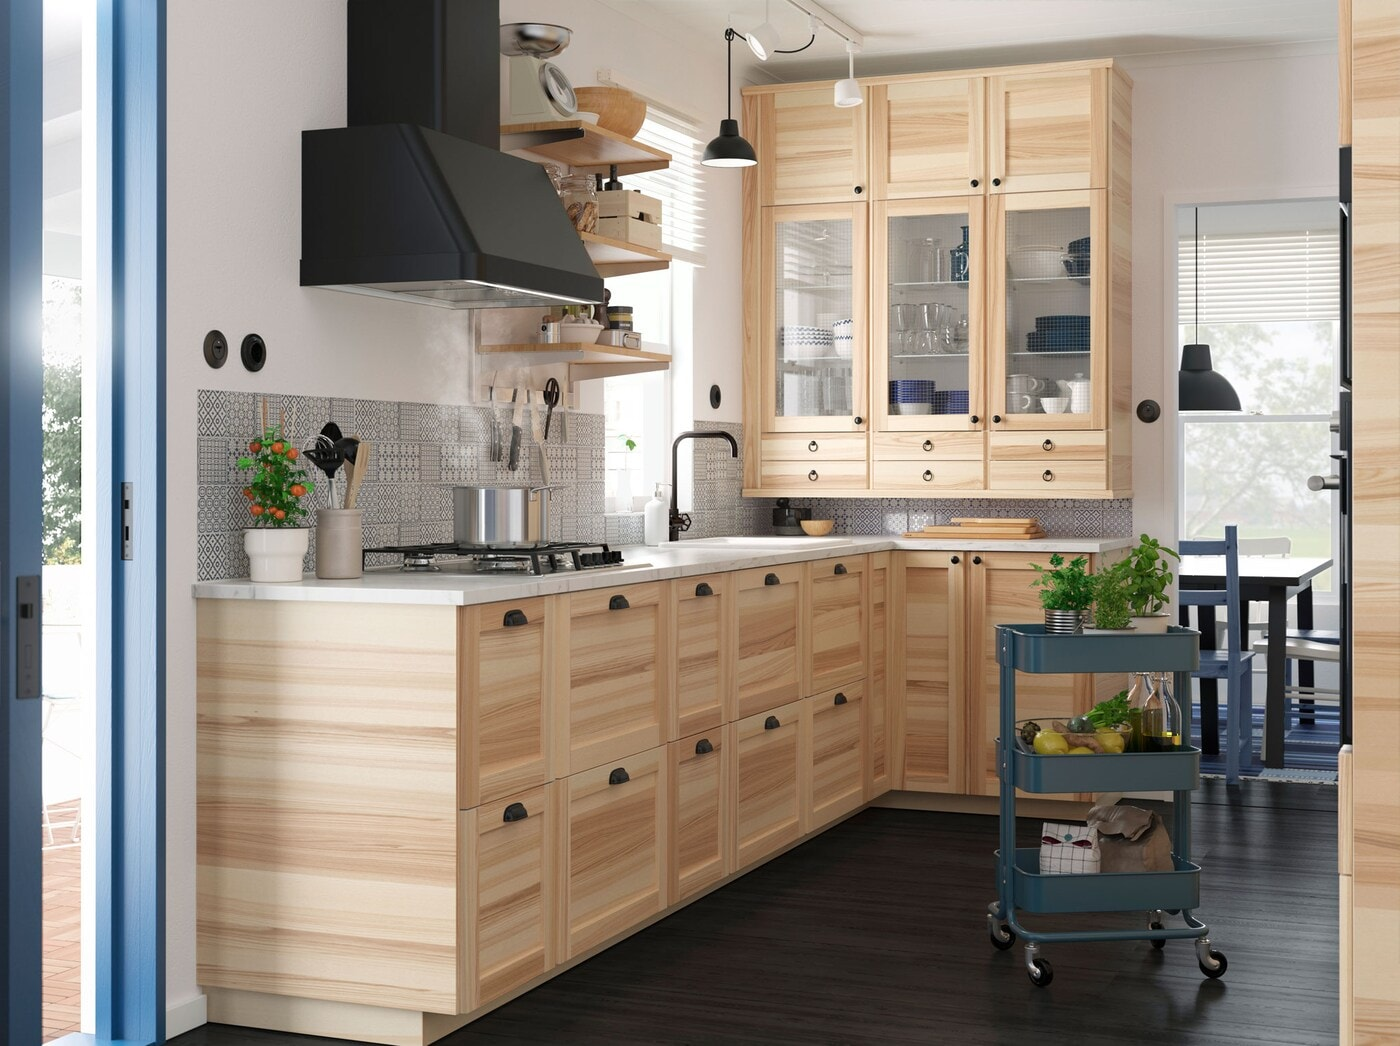 Cucina Piccola Angolare Ikea https://www.ikea/it/it/rooms/kitchen/gallery/adatta-tuo